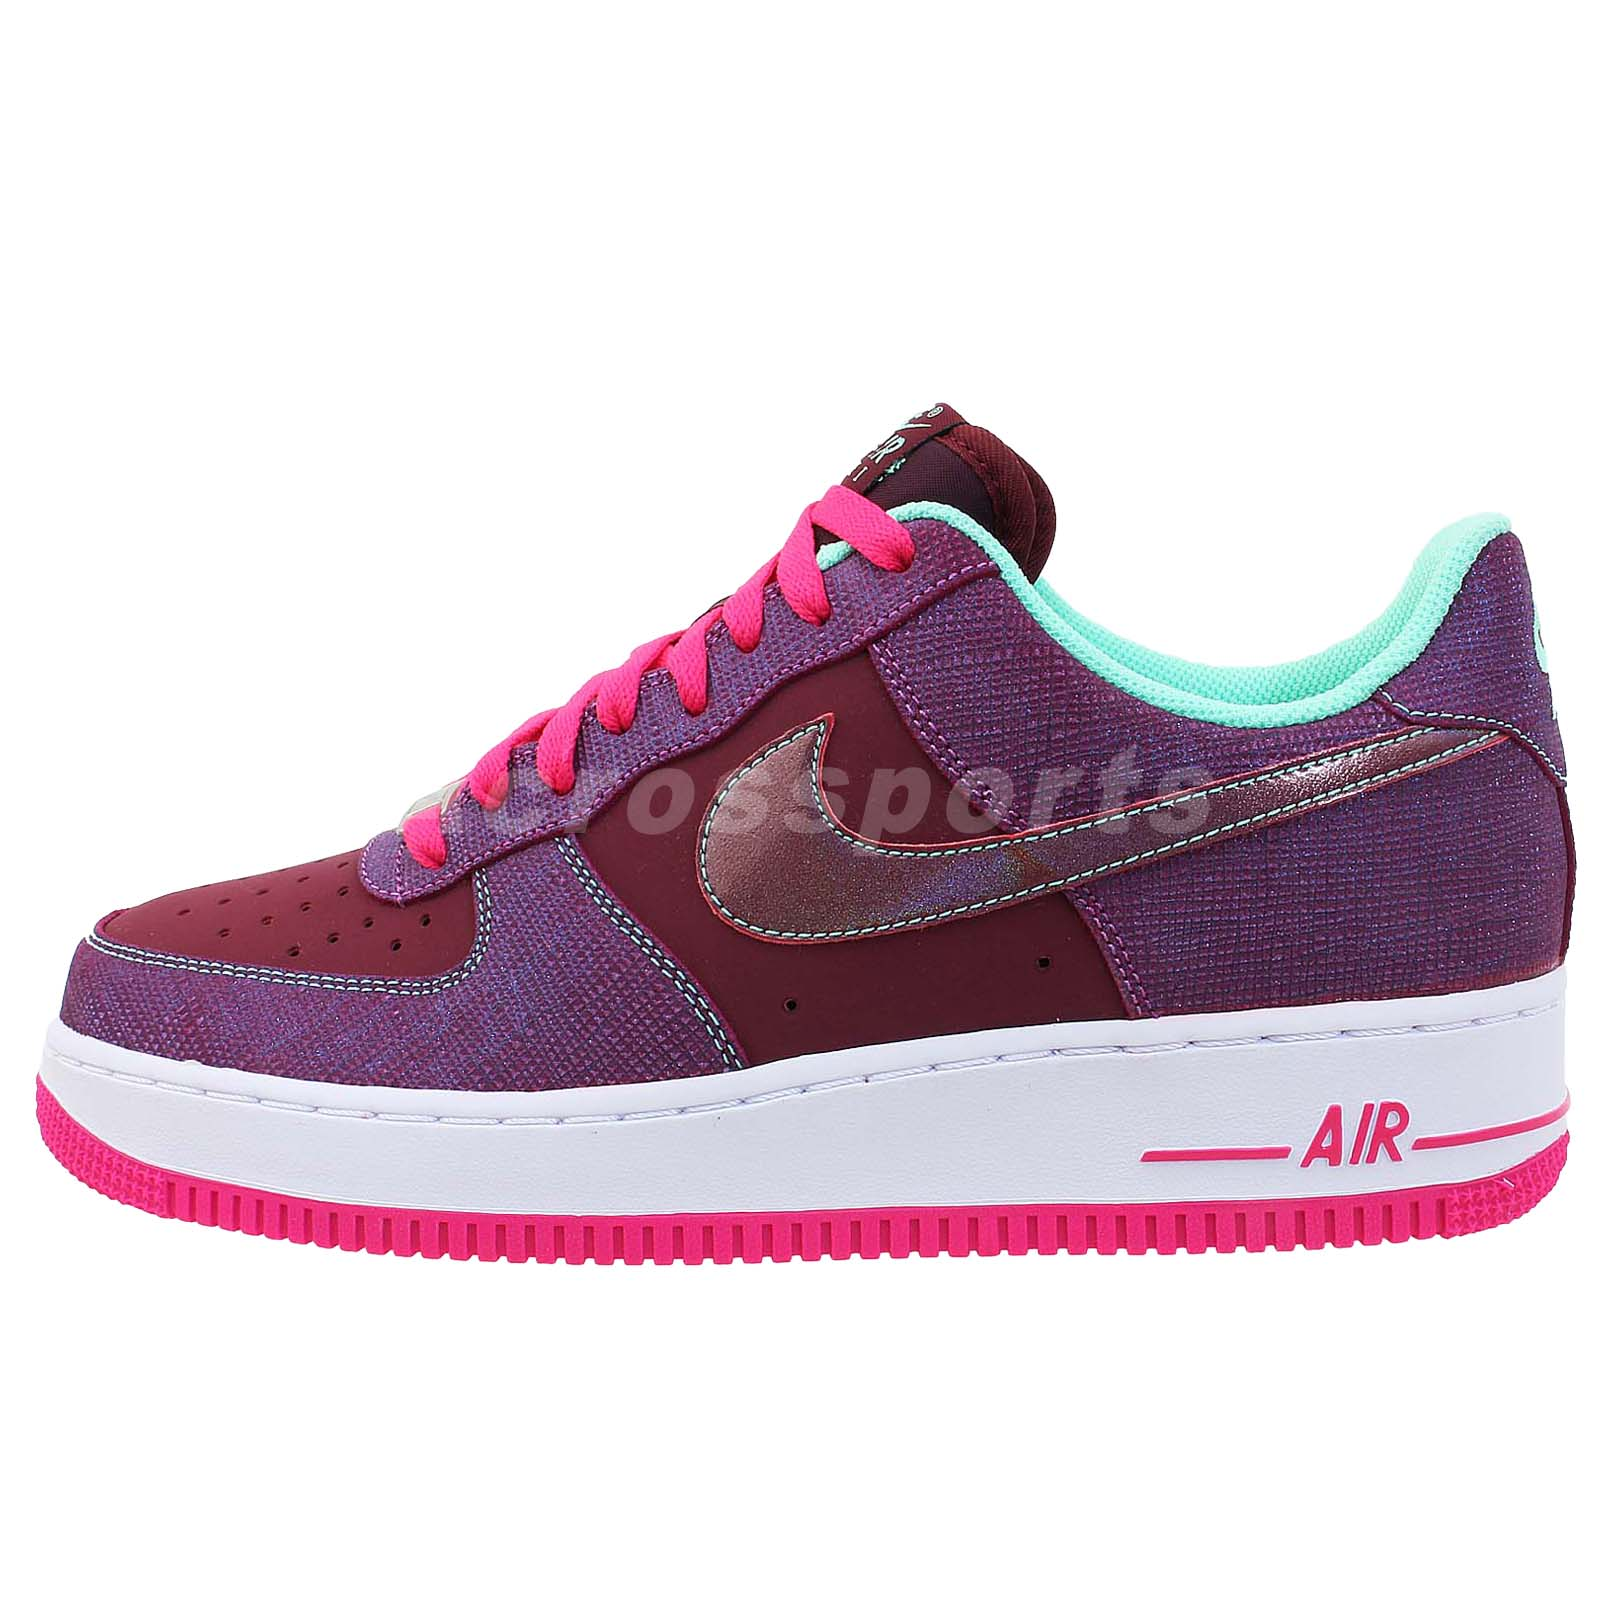 nike air force 1 purple pink 2013 mens classic casual. Black Bedroom Furniture Sets. Home Design Ideas